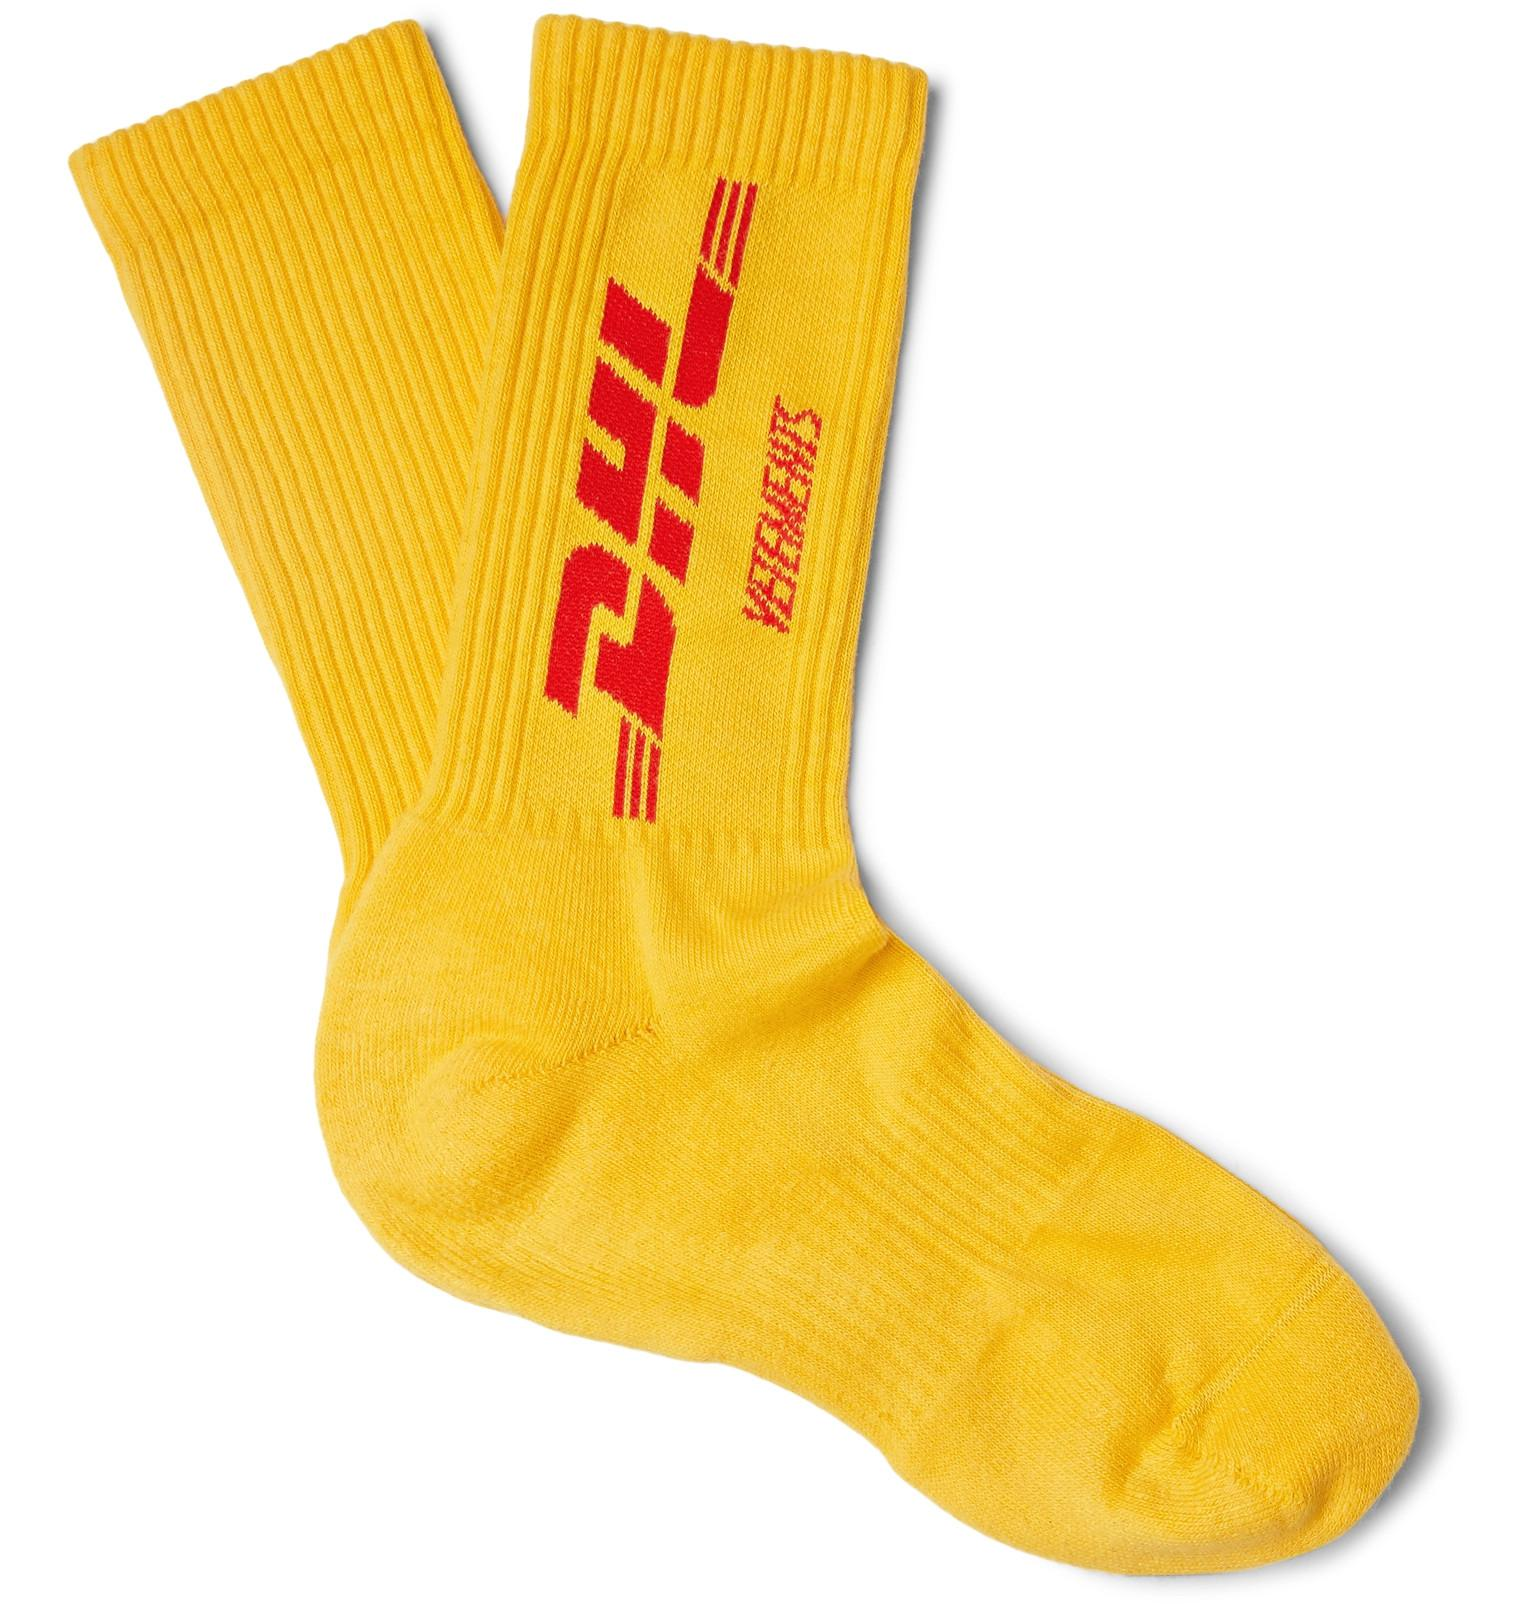 Release Dates x DHL Socks in Yellow VETEMENTS Many Kinds Of Sale Online Cheap Sale New Styles Sale Pay With Visa Clearance Low Cost ozKPnHVl2I